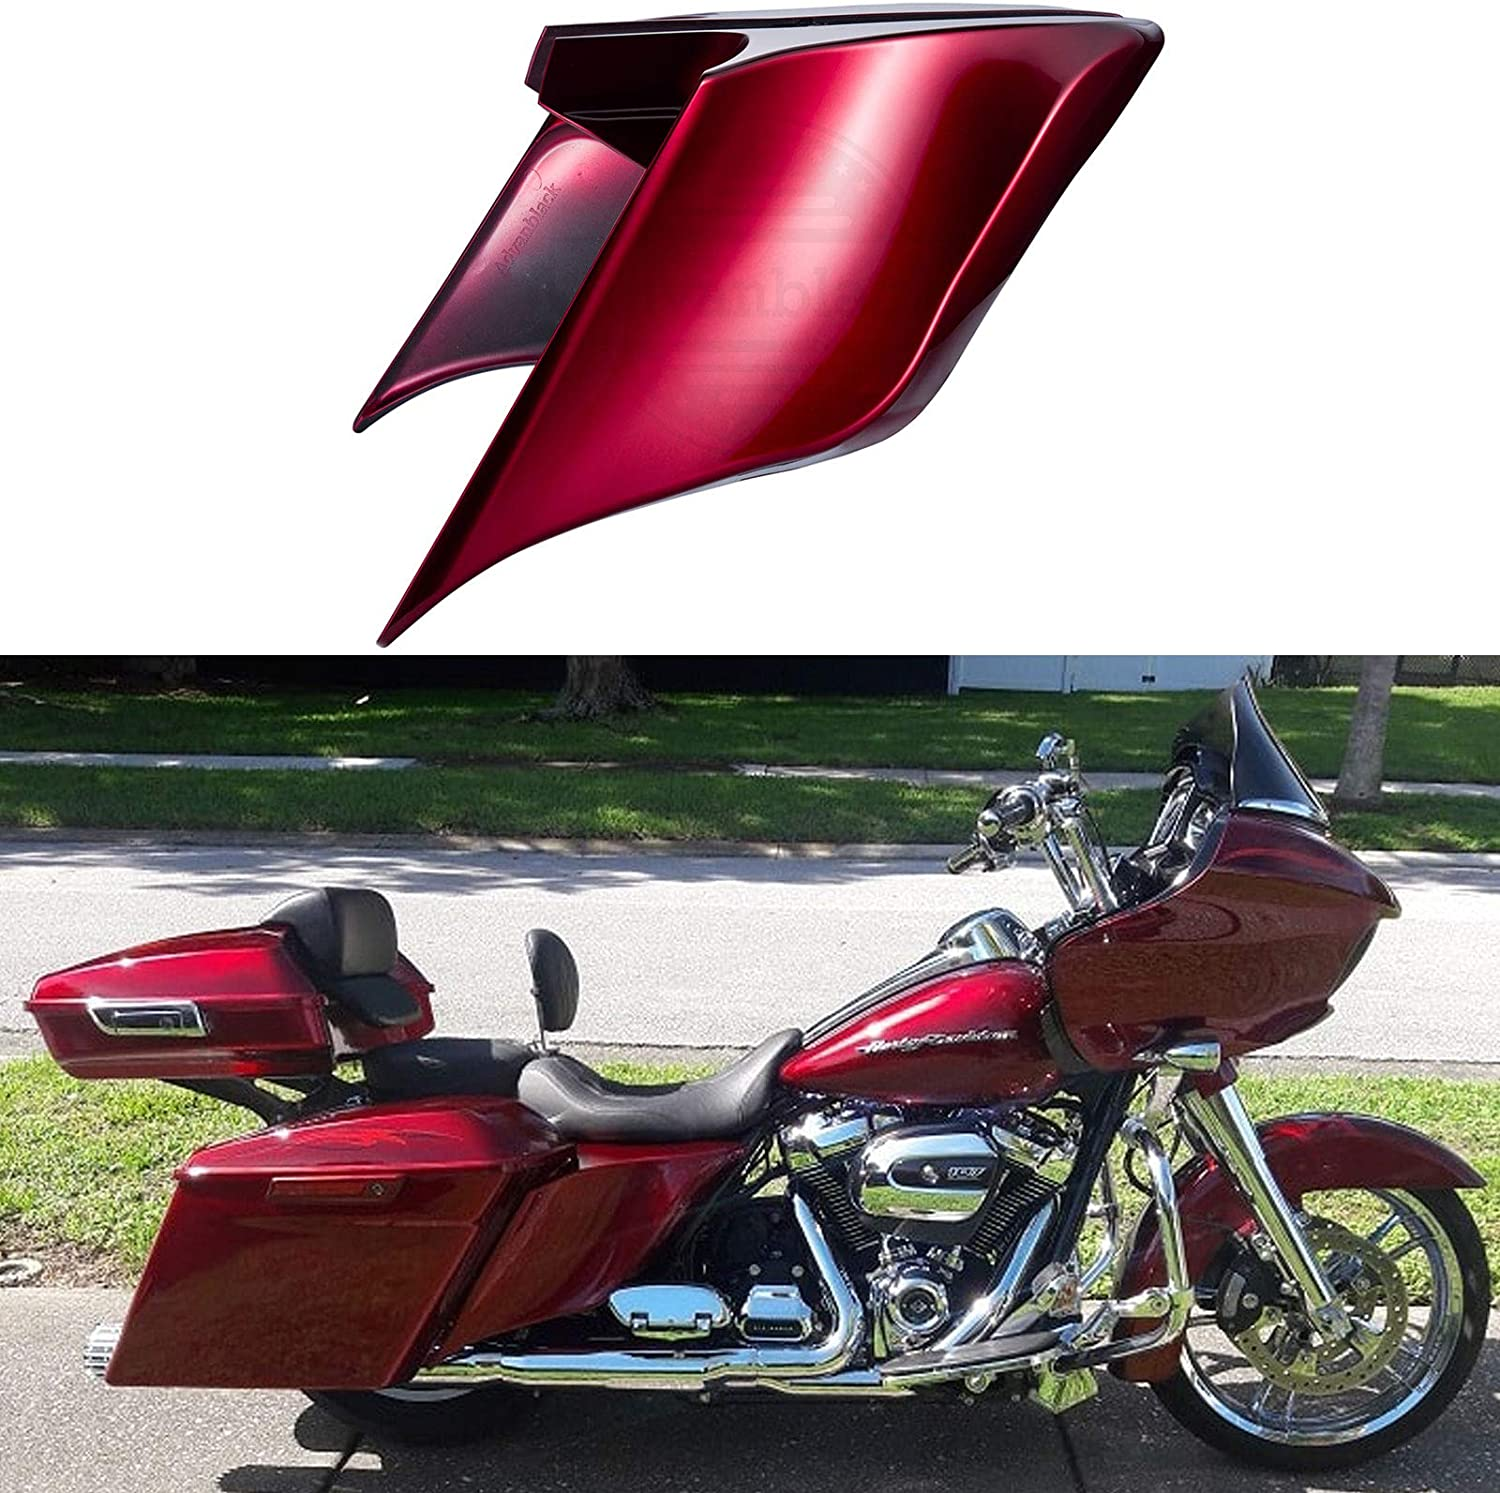 Advanblack Velocity Red Sunglo Extended Side Covers Stretched Side Panels Skirts Fit for 2014 Harley Touring Street Glide Road Glide Special Electra Glide Ultra Classic